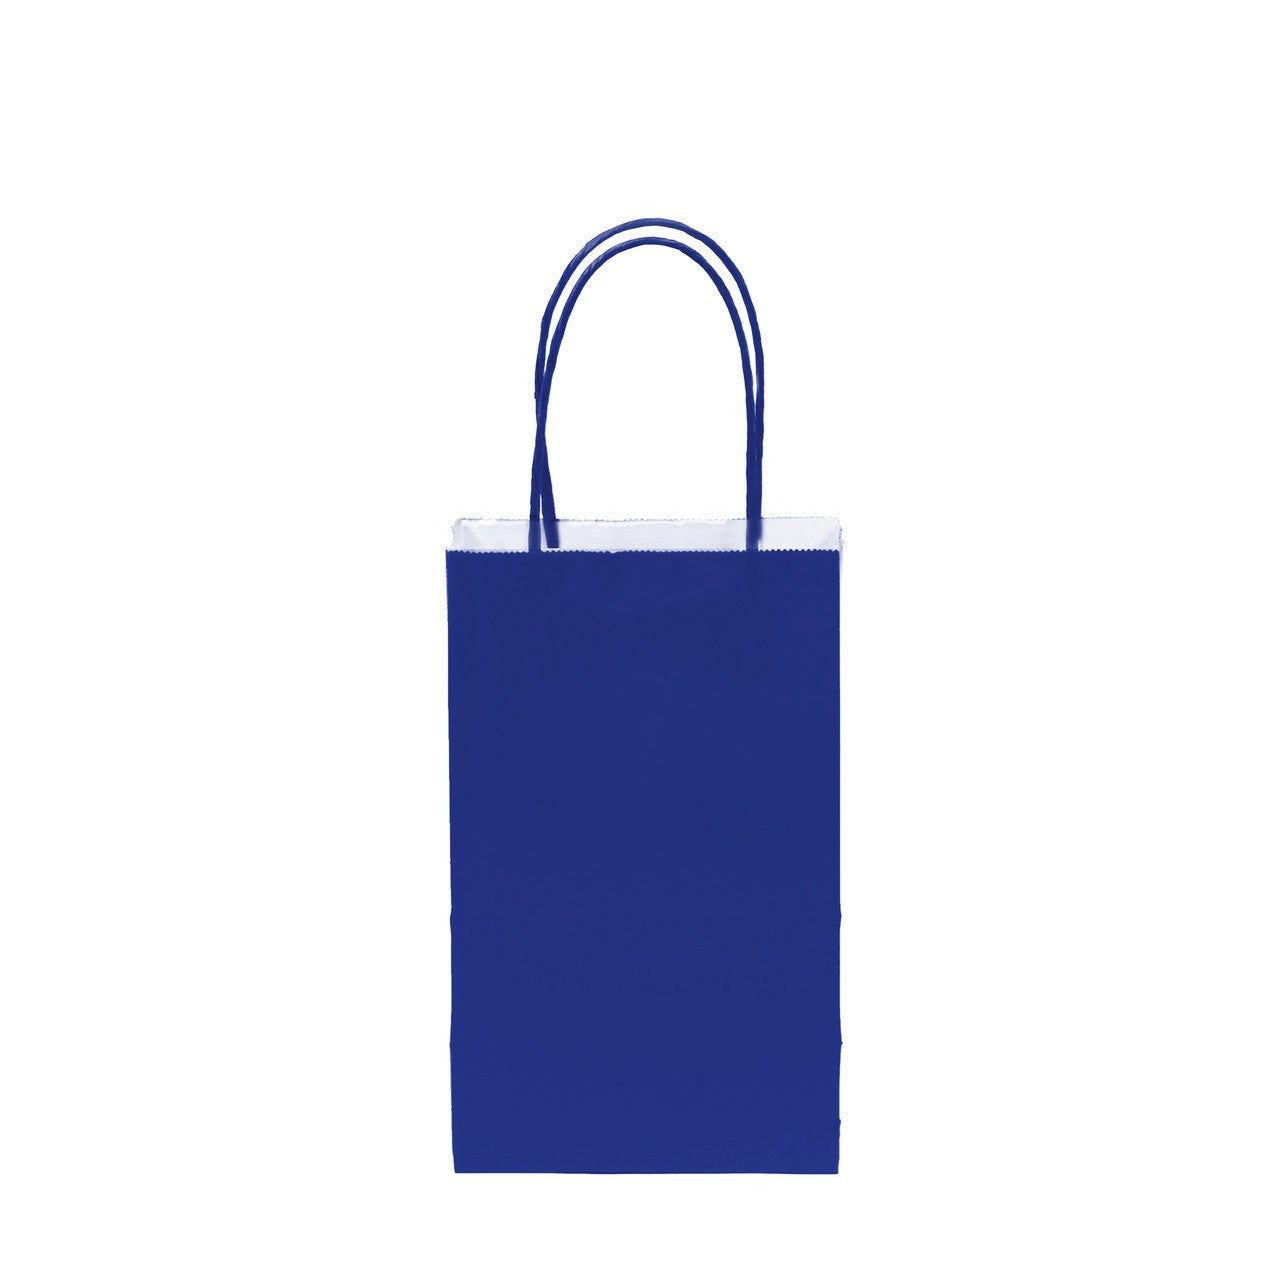 "12 pcs- Solid Royal Blue Color Kraft Bag 5"" x 8.25"""